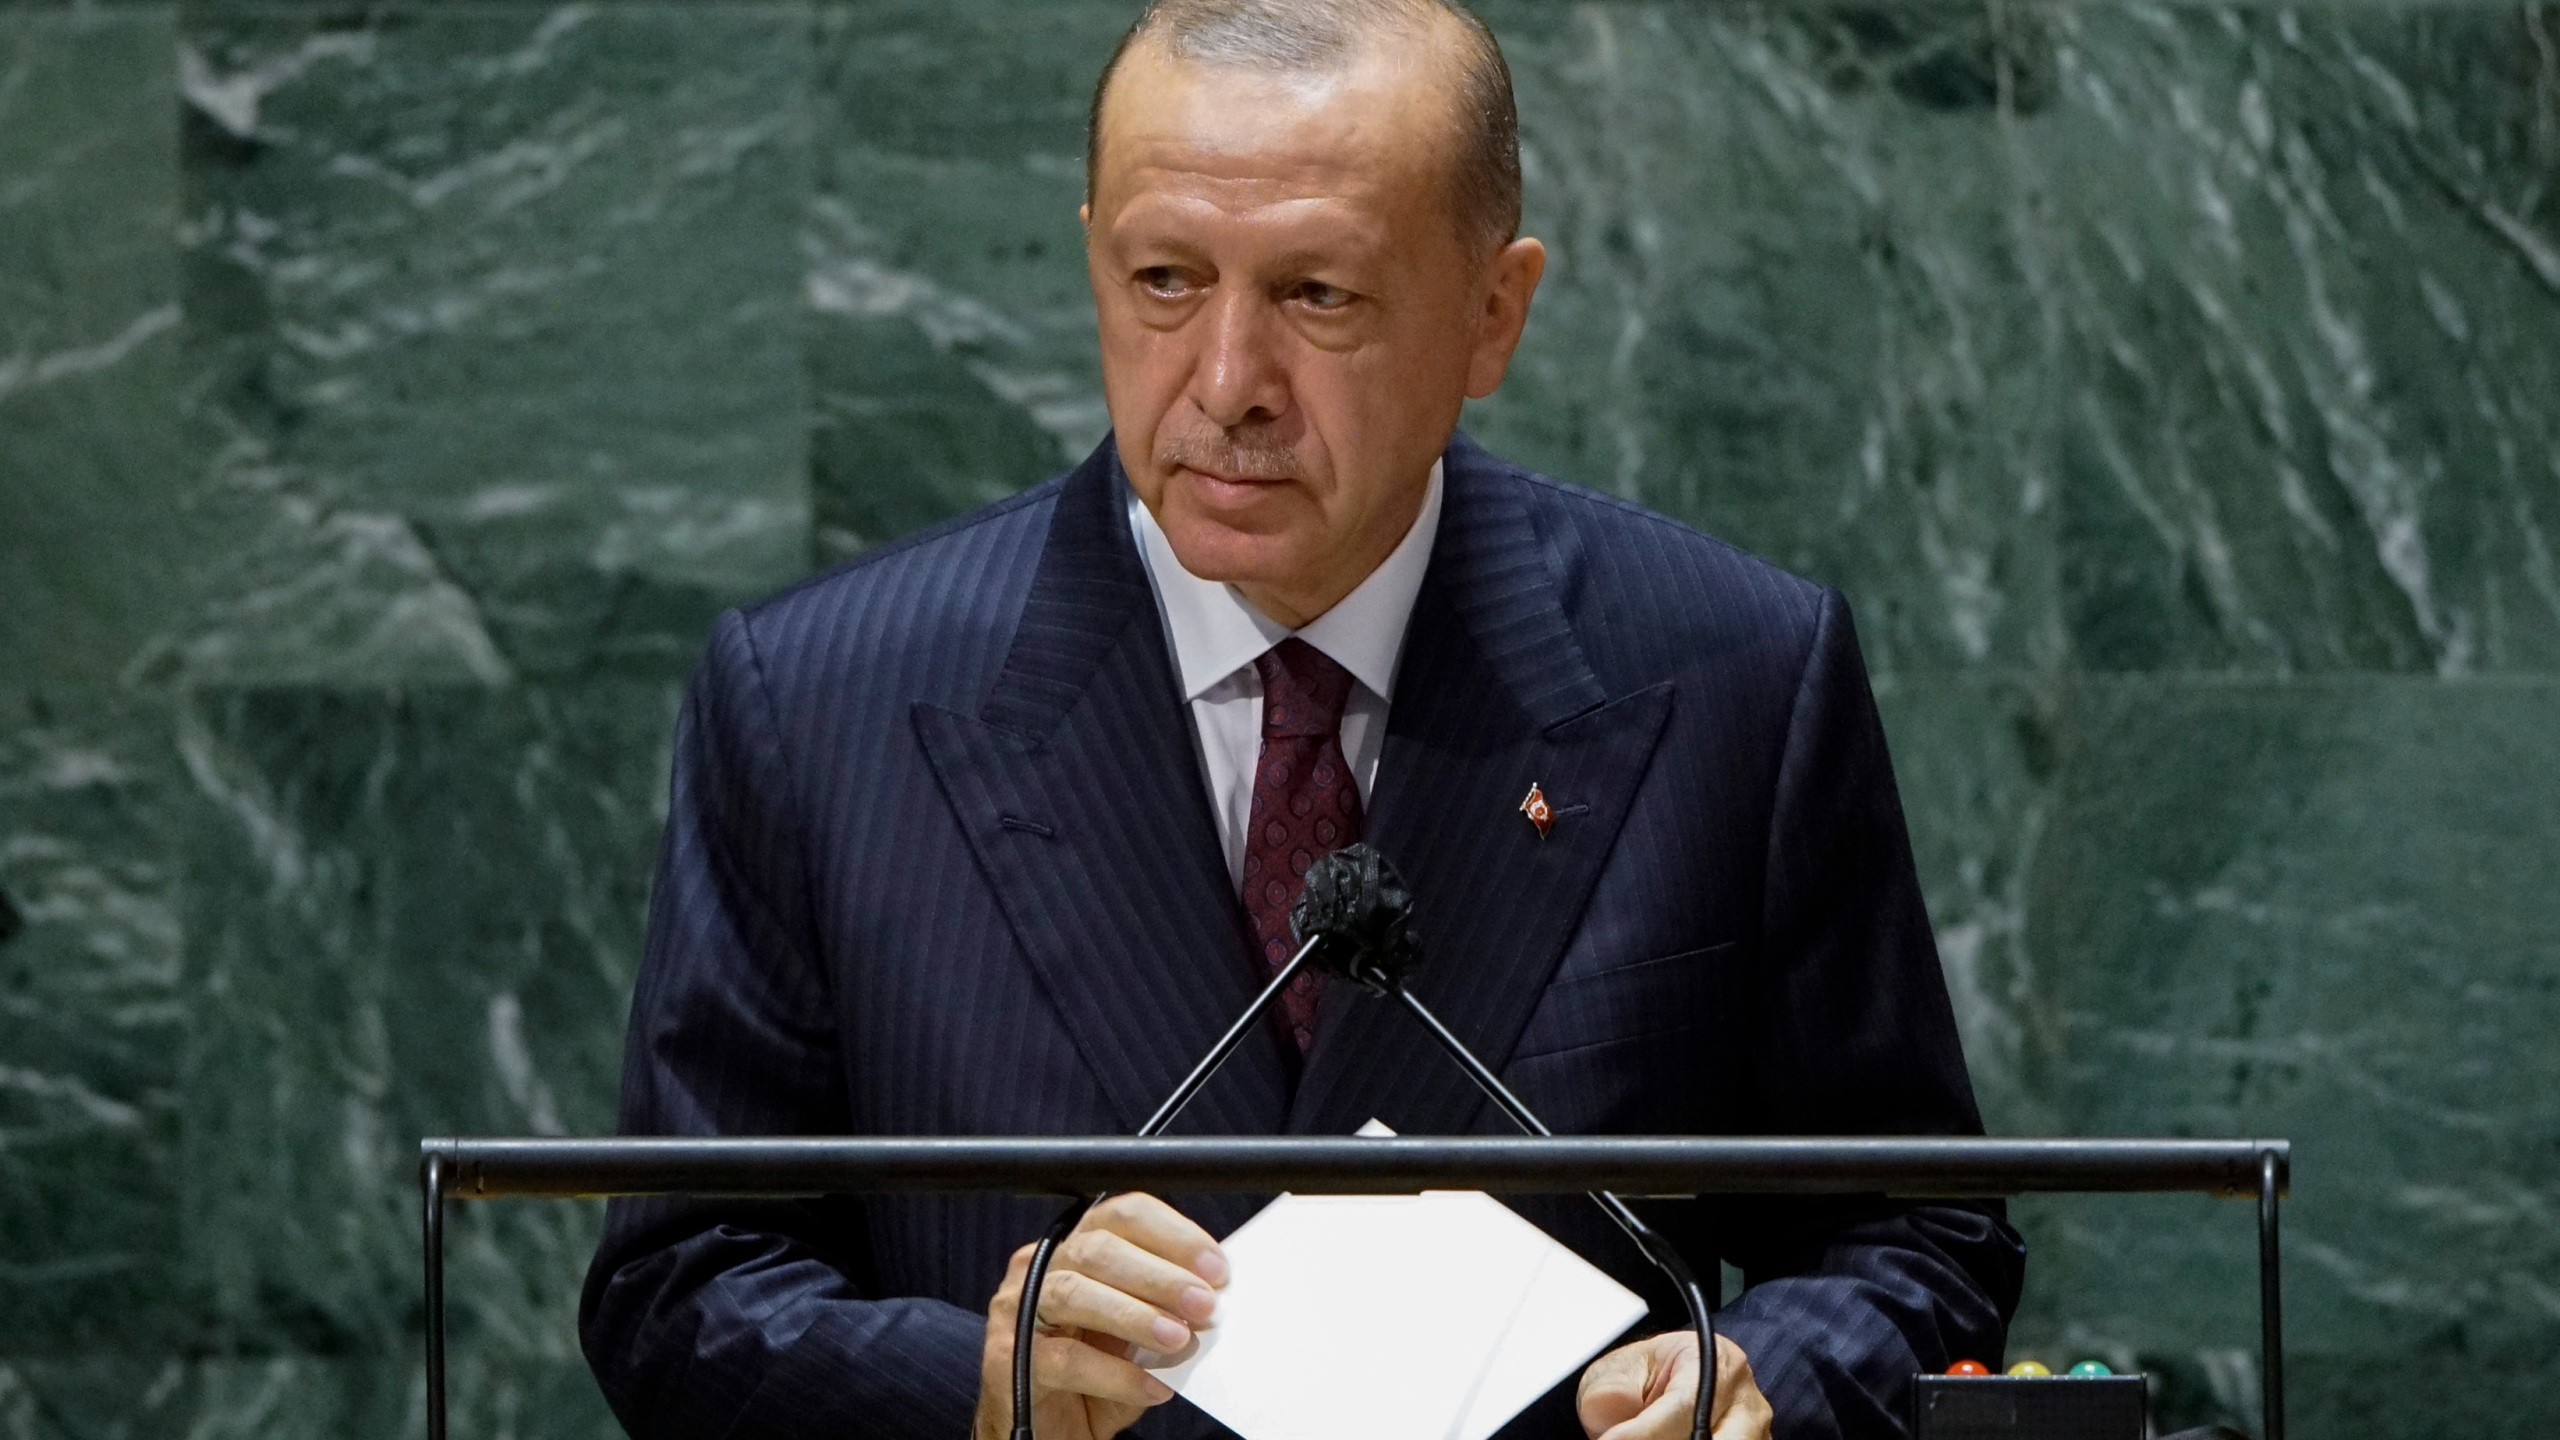 Turkish President Tayyip Erdogan addresses 76th Session of the U.N. General Assembly in New York City